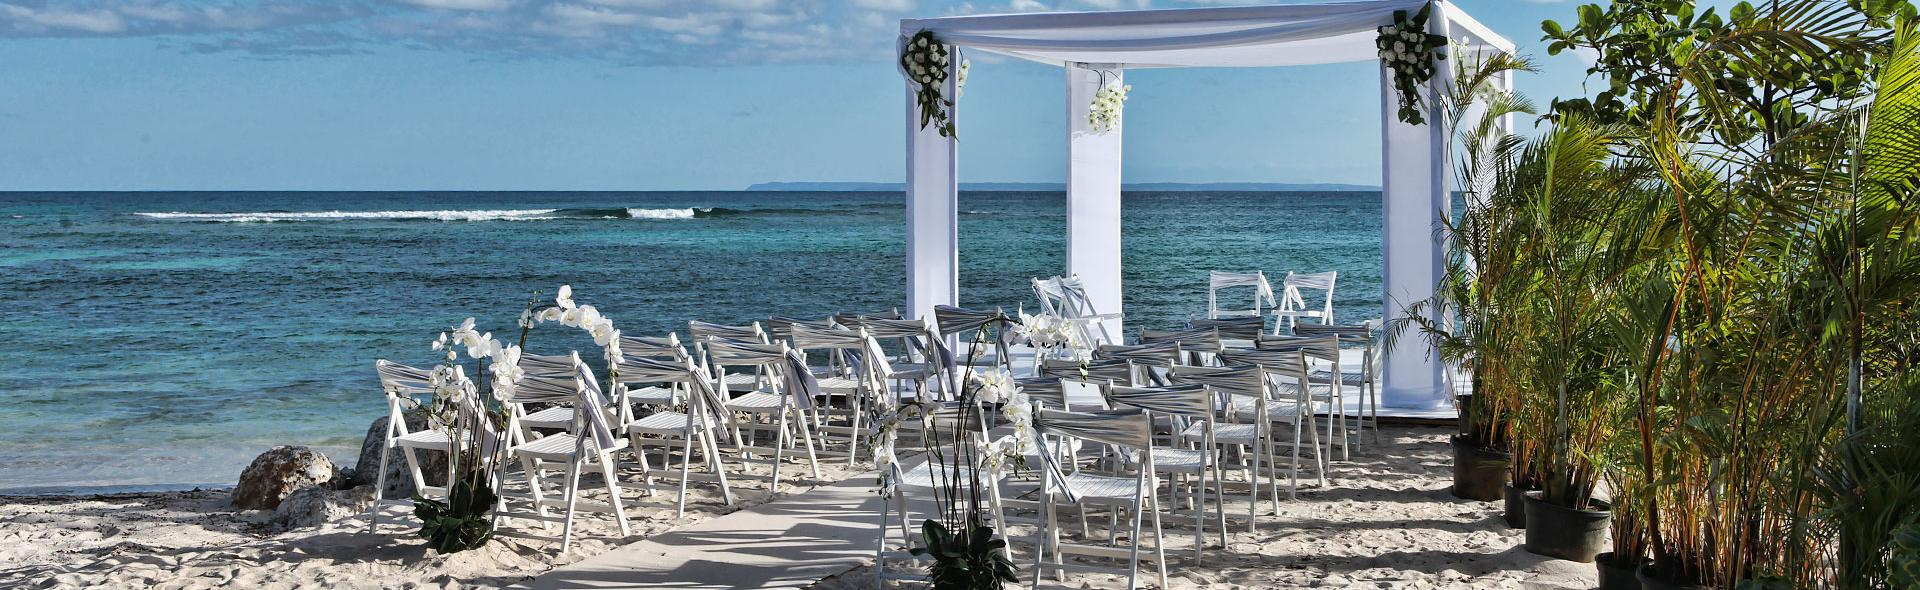 Wedding location in Martinique